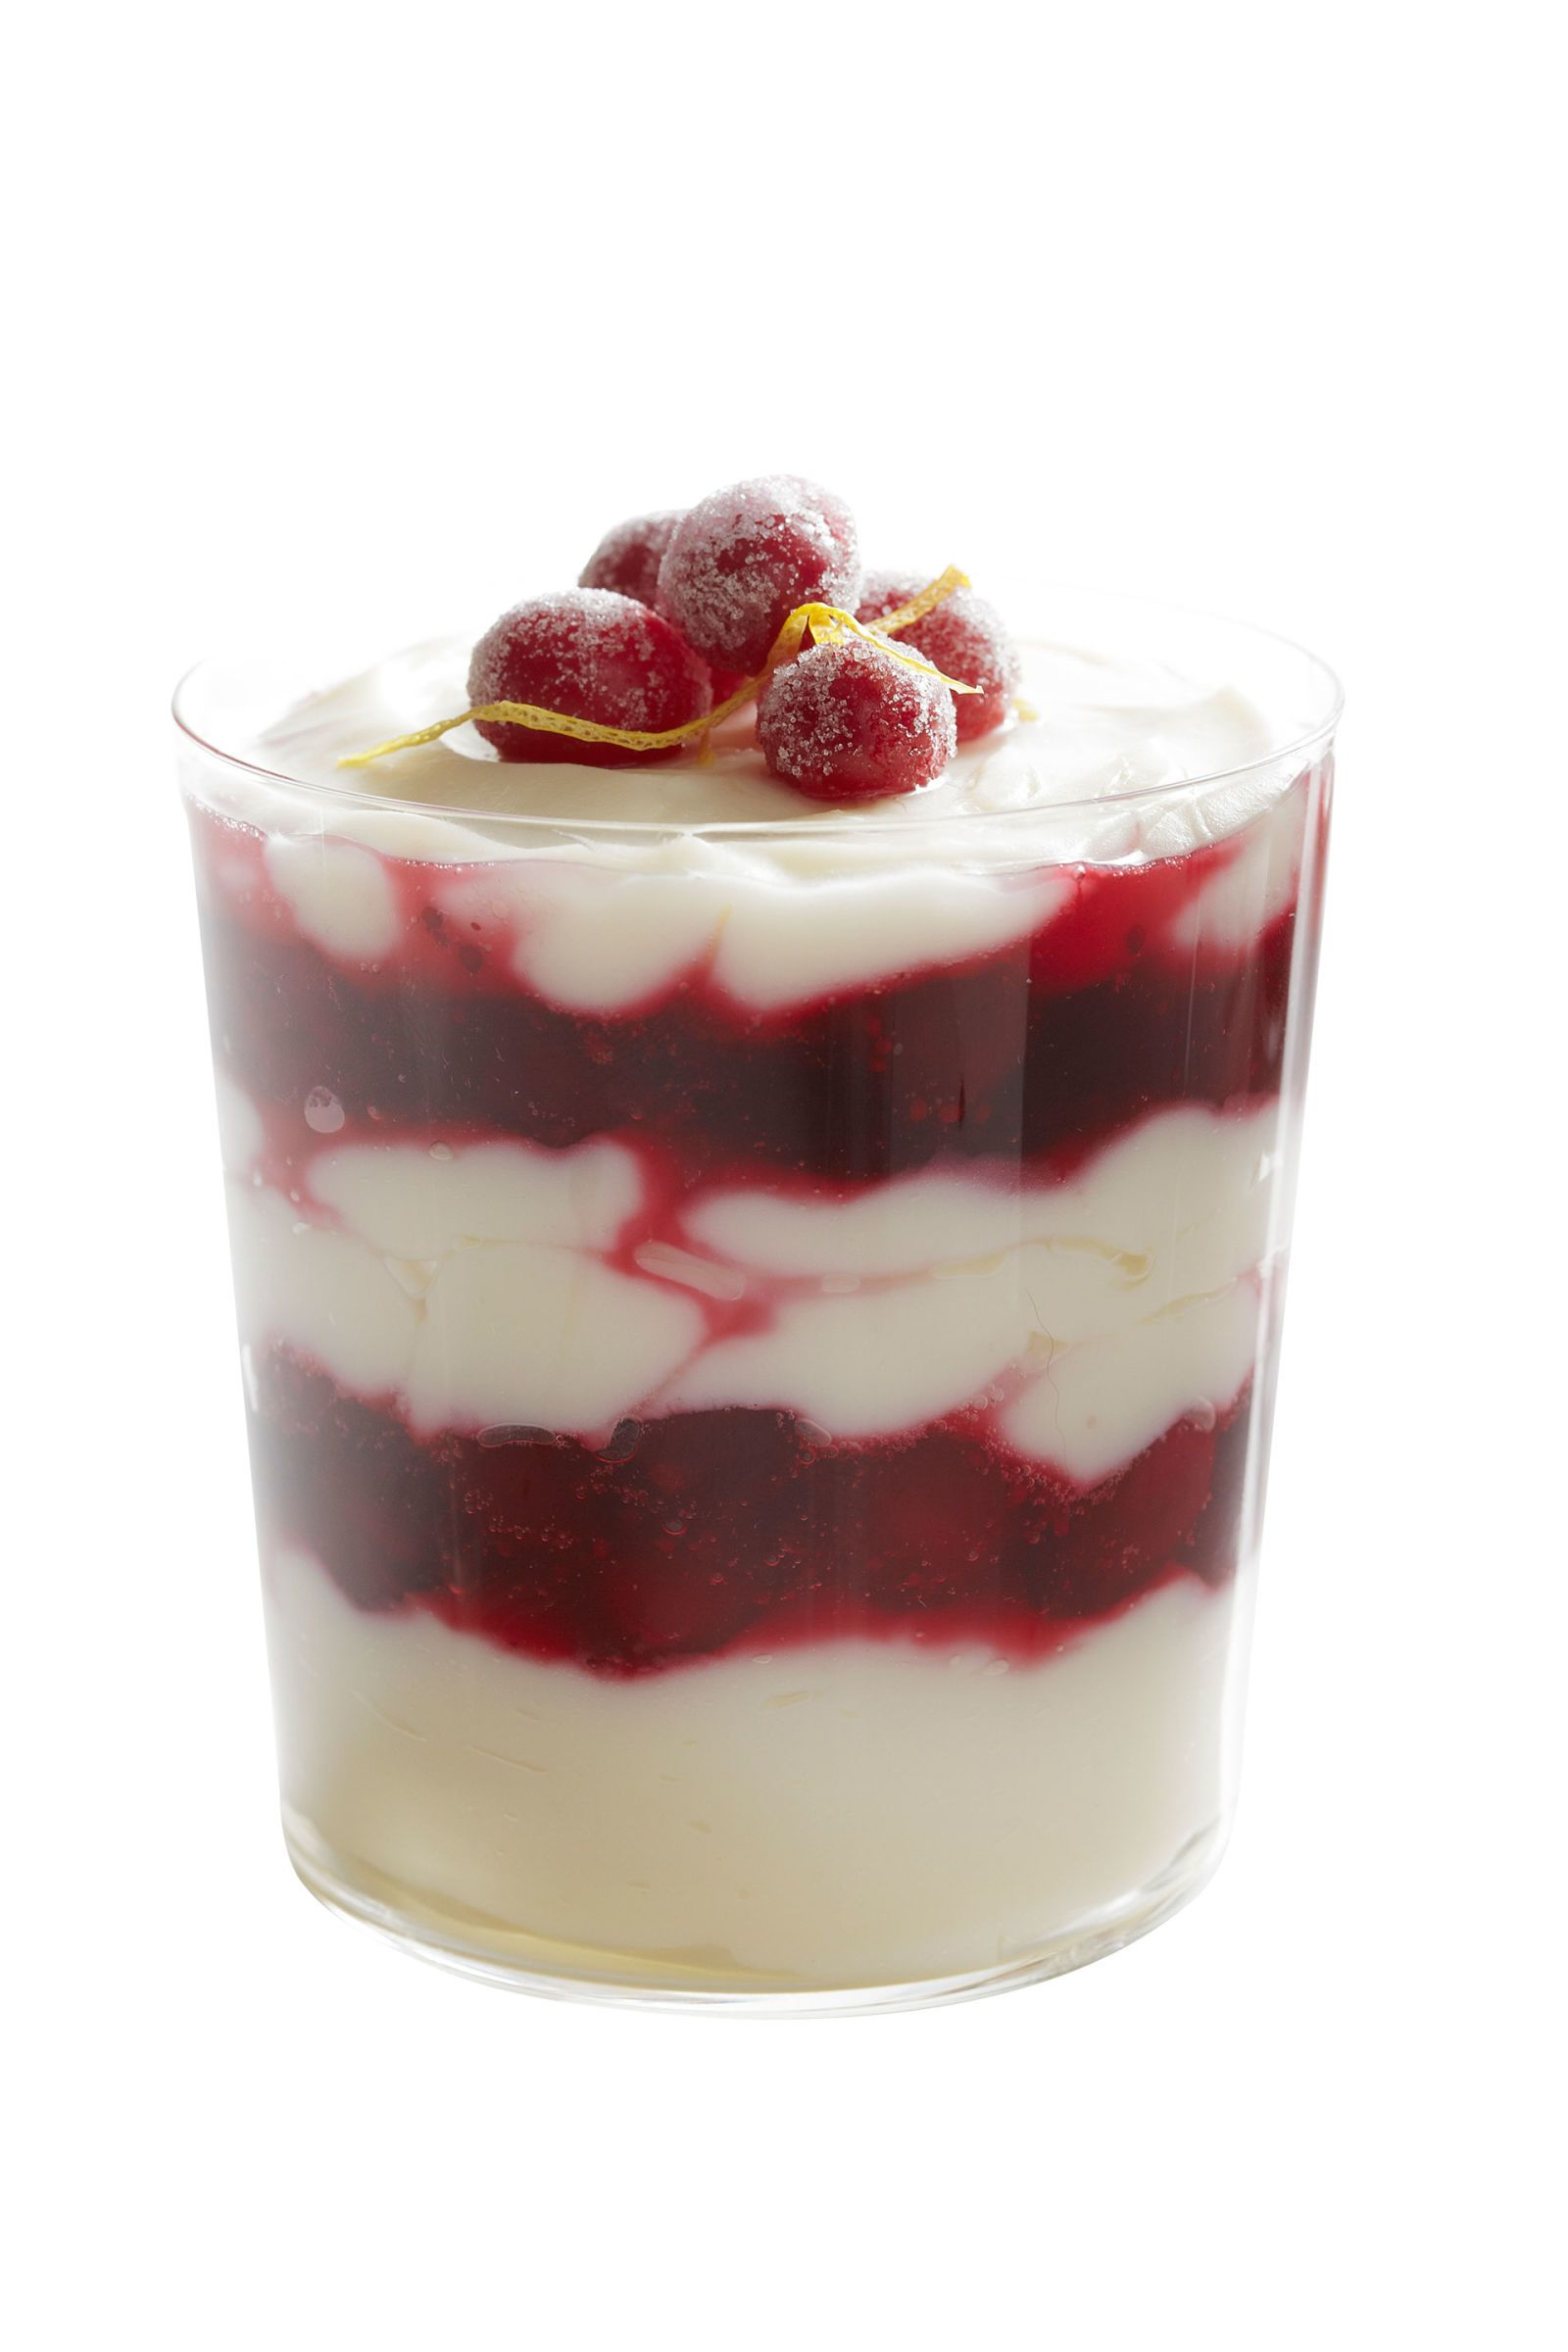 Cranberry-lemon pudding recipe